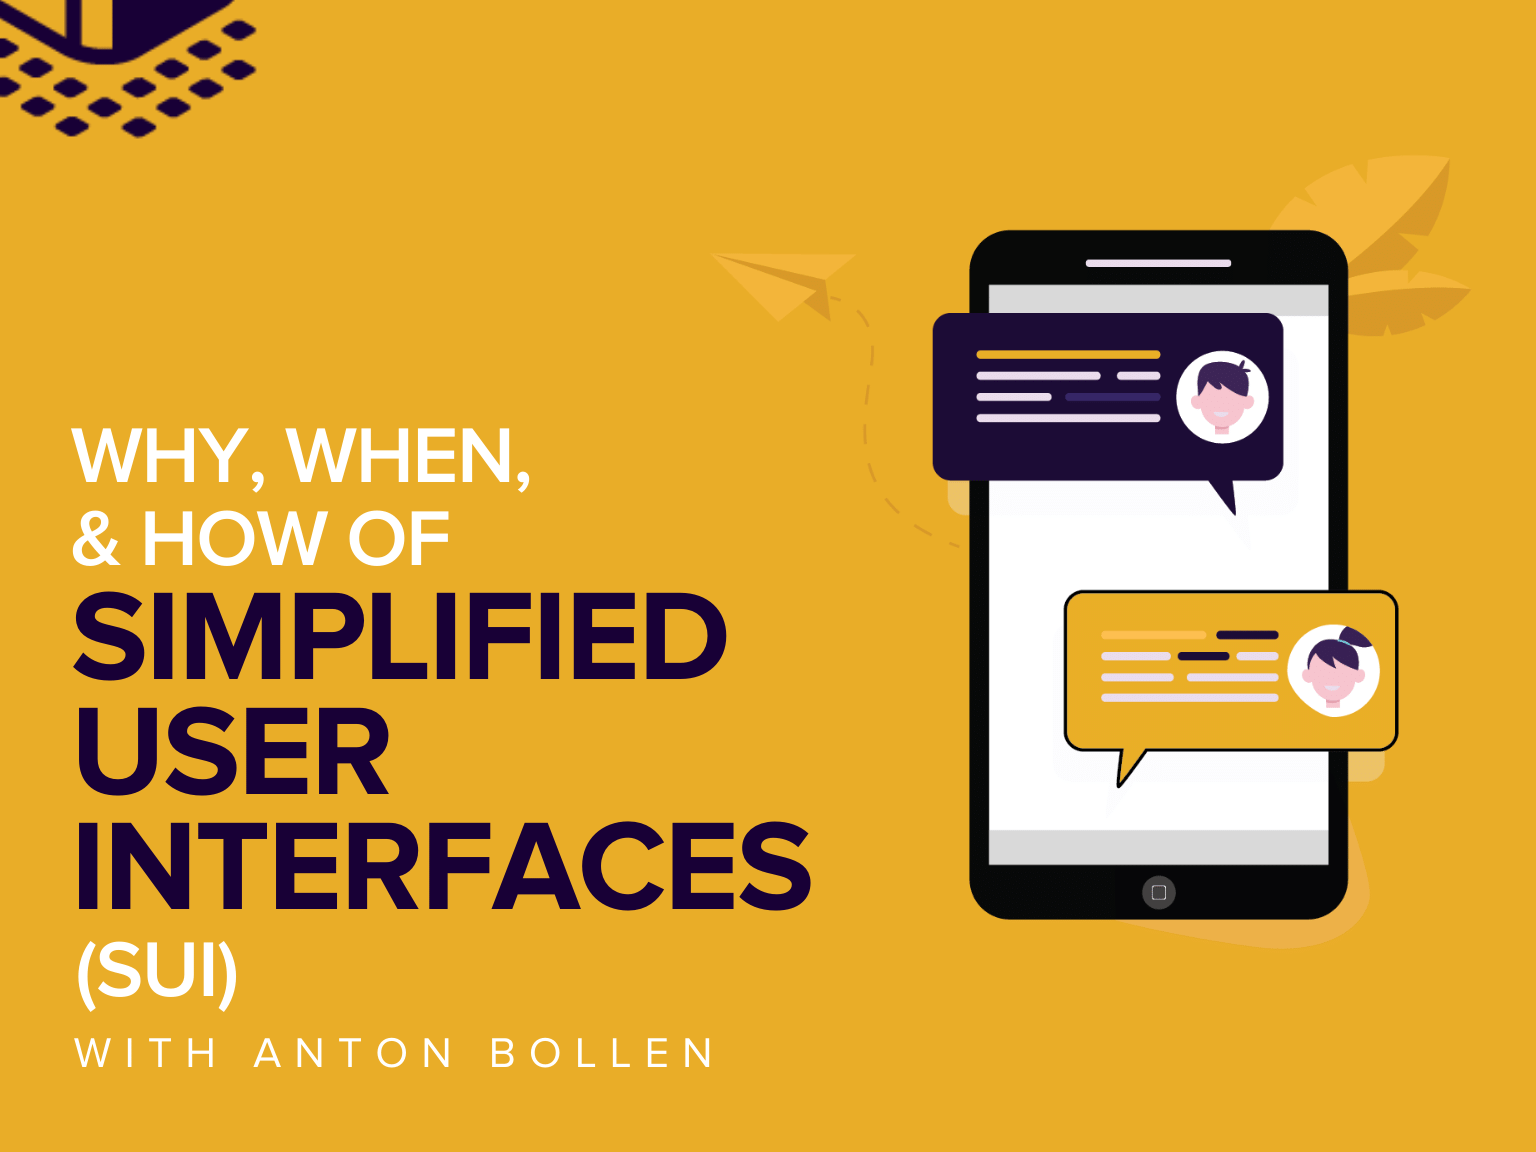 Why, When, & How of Simplified User Interfaces (SUI) with Anton Bollen